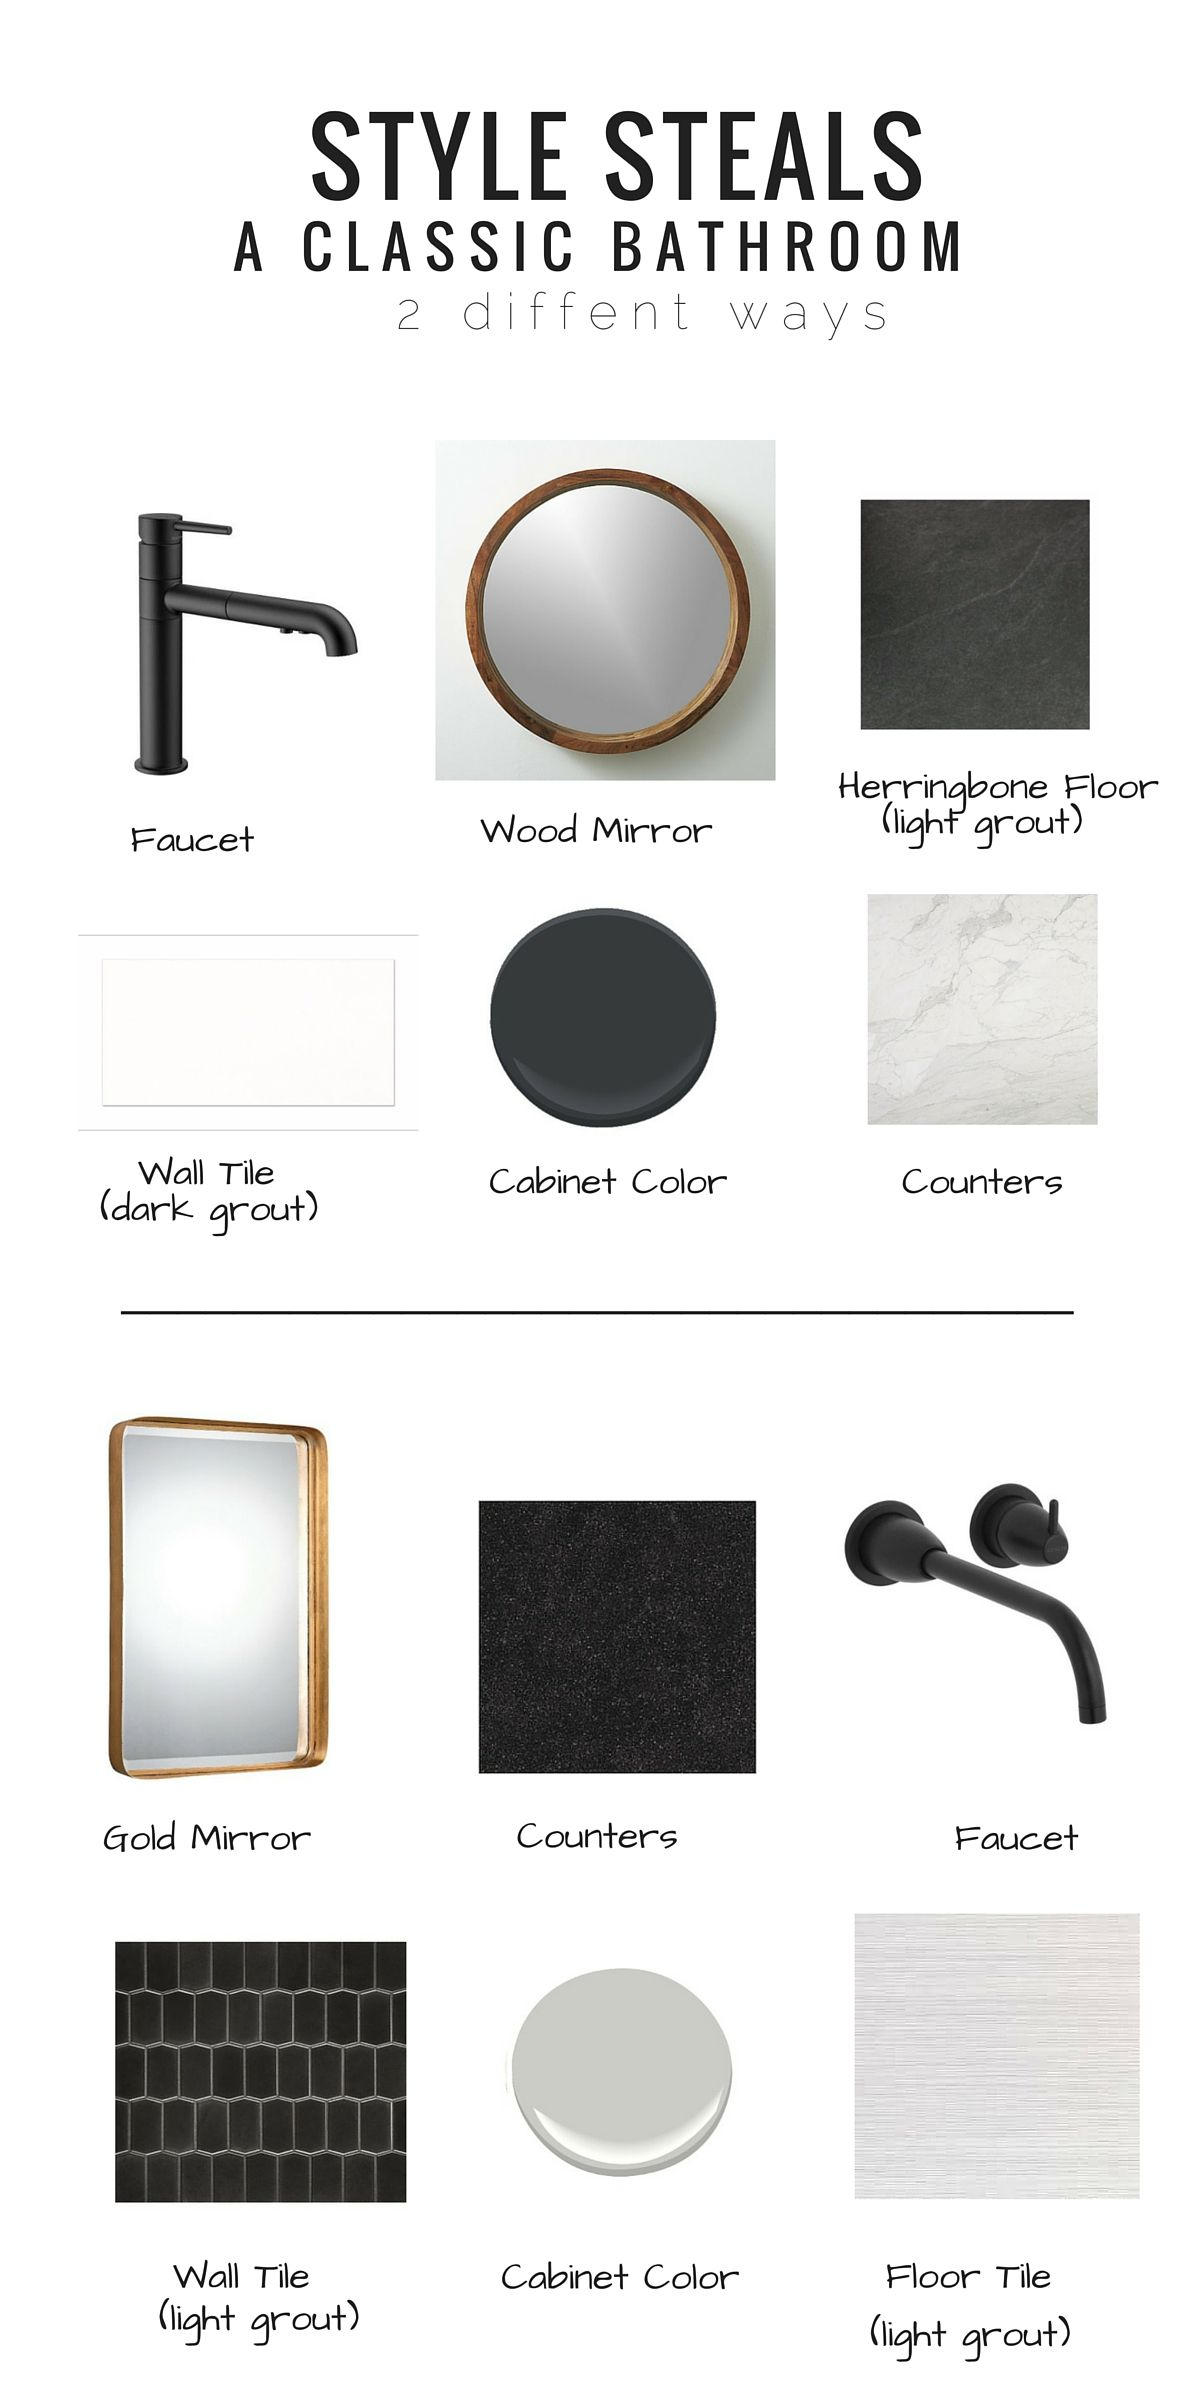 Black and white bathroom ideas pinterest - Style Steals Classic Black And White Bathroom Studio Thomas